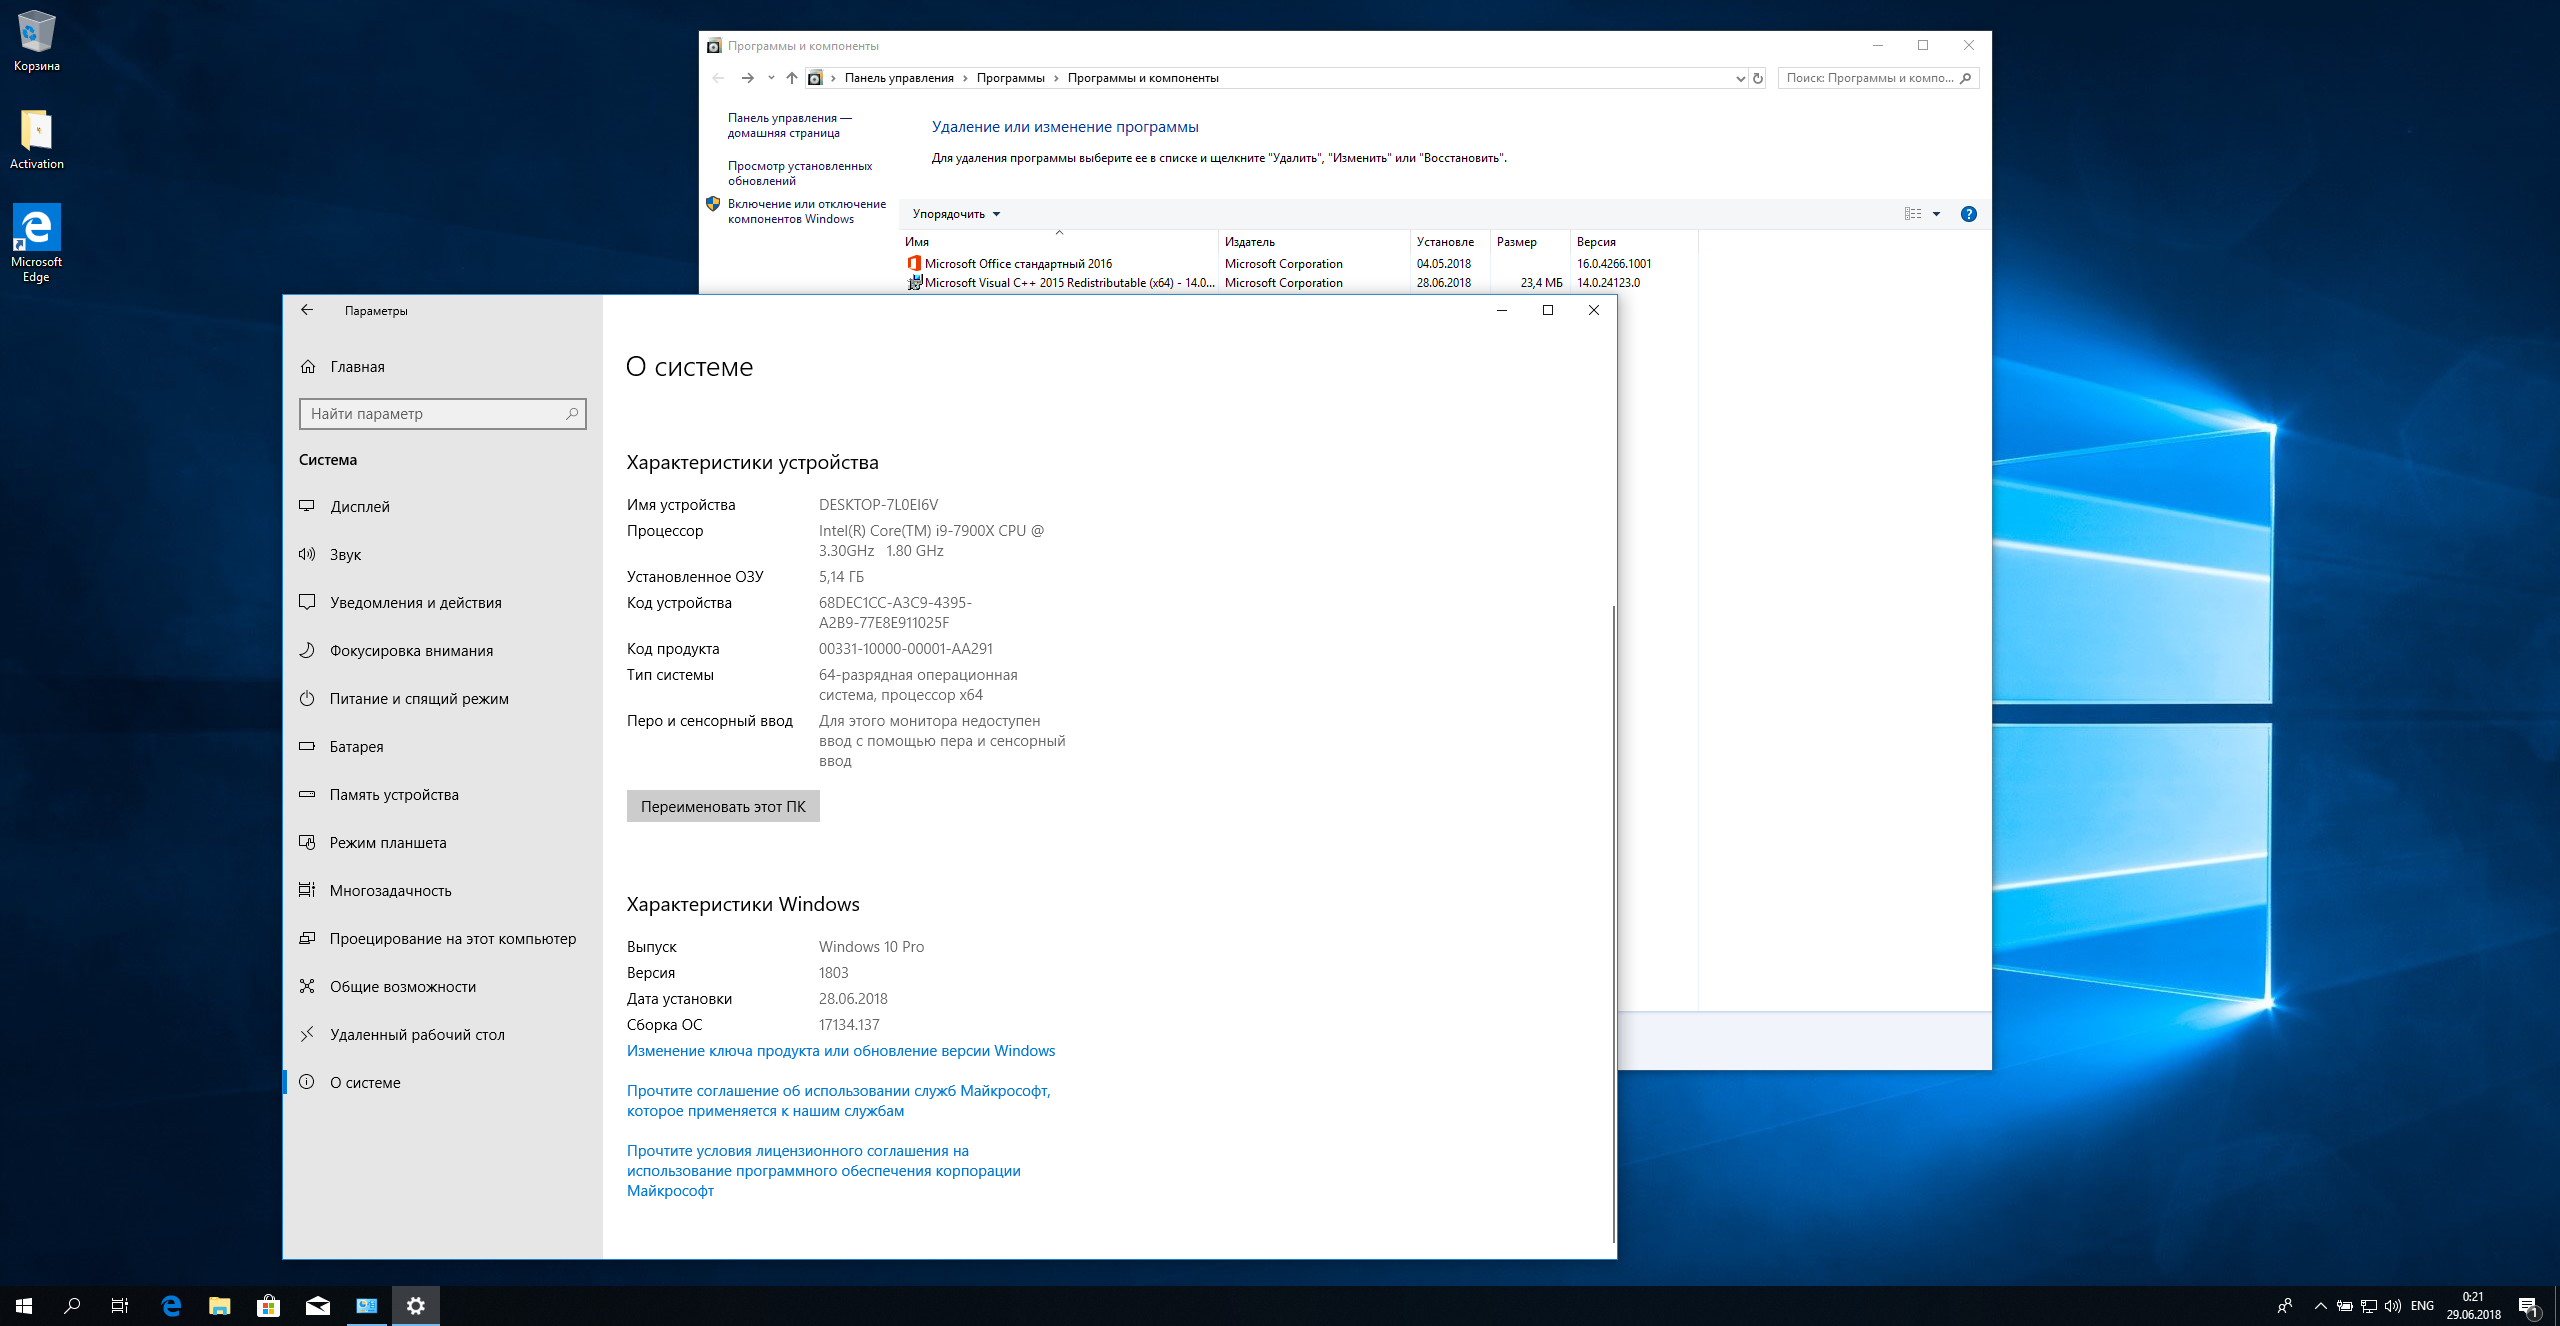 windows 10 pro  1803  x64   office 2016 by mandarinstar